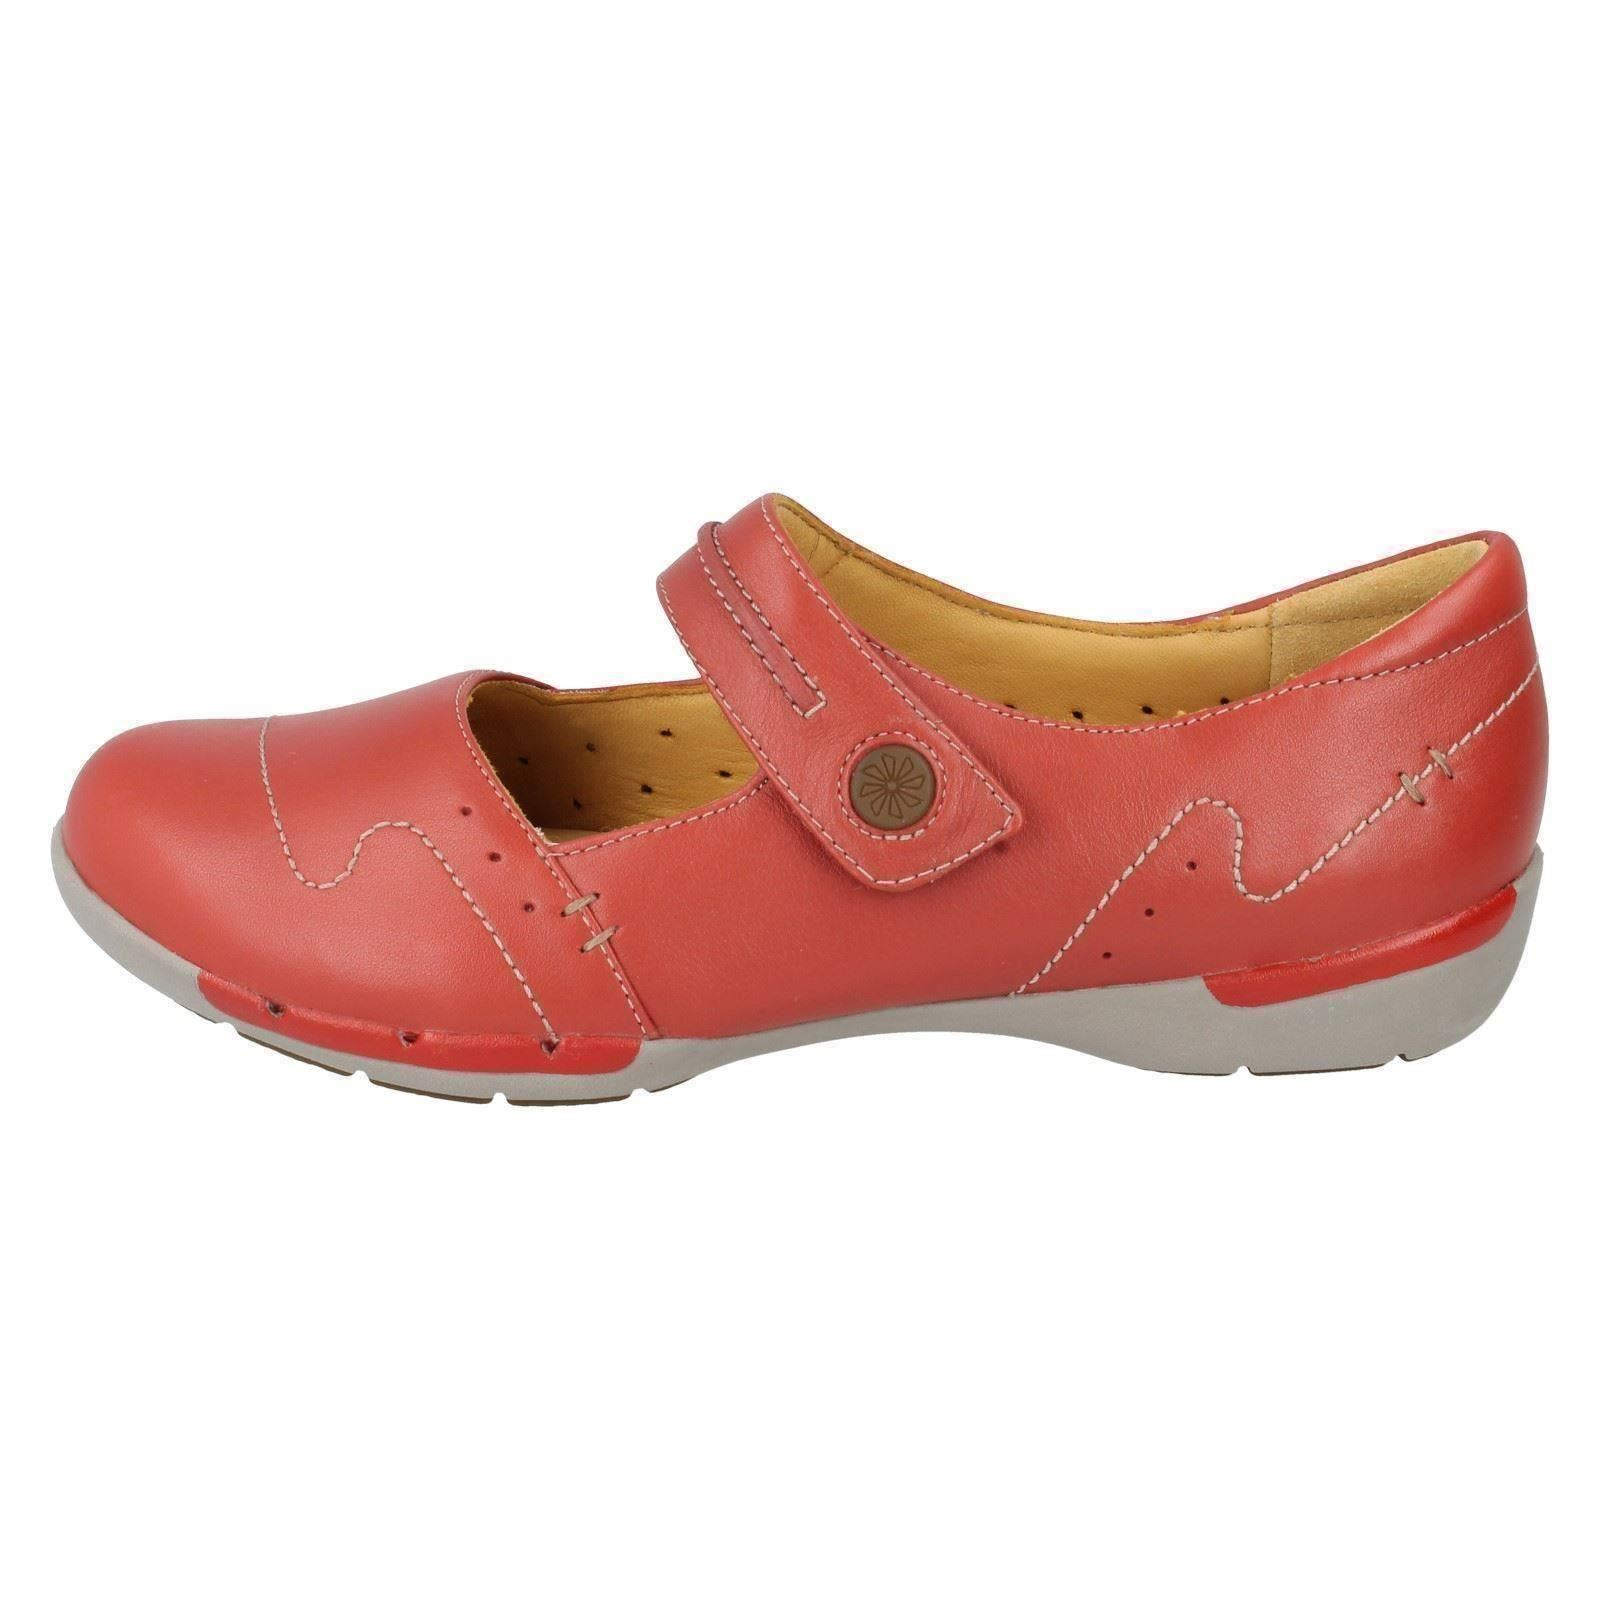 Clarks Unstructured Mary Jane Shoes Size